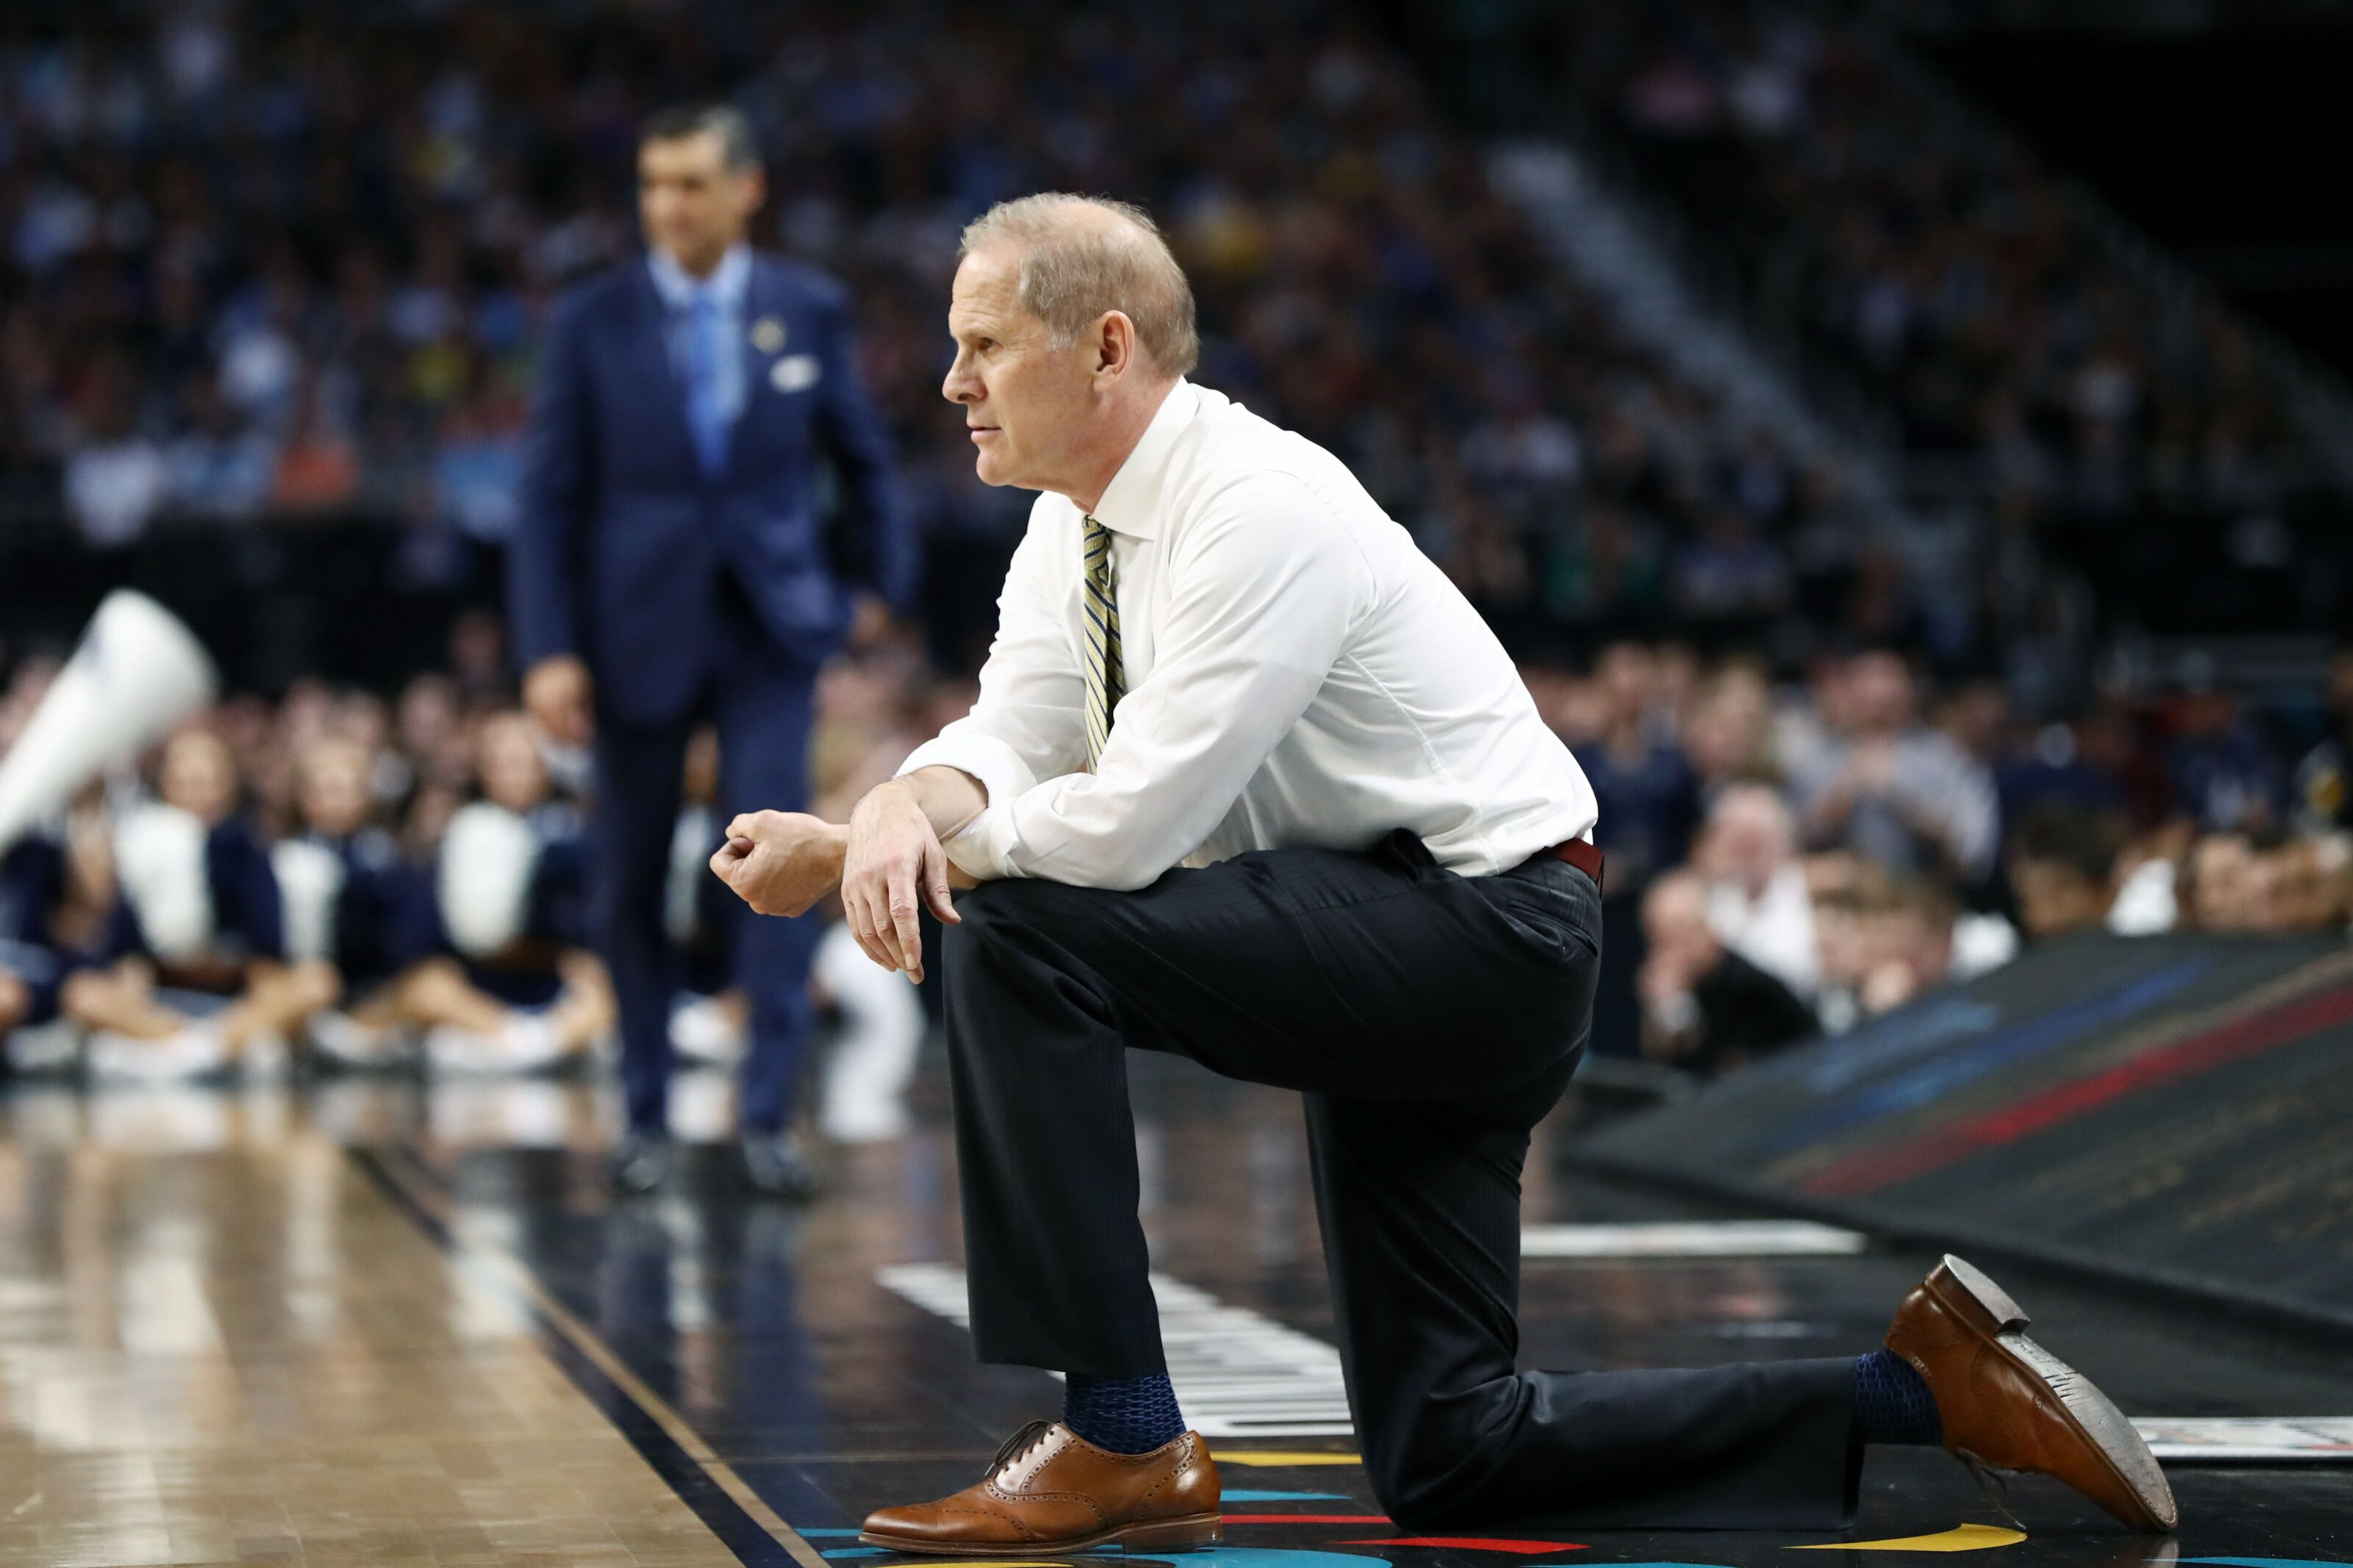 Cleveland Cavs talking to John Beilein about the coach stepping down